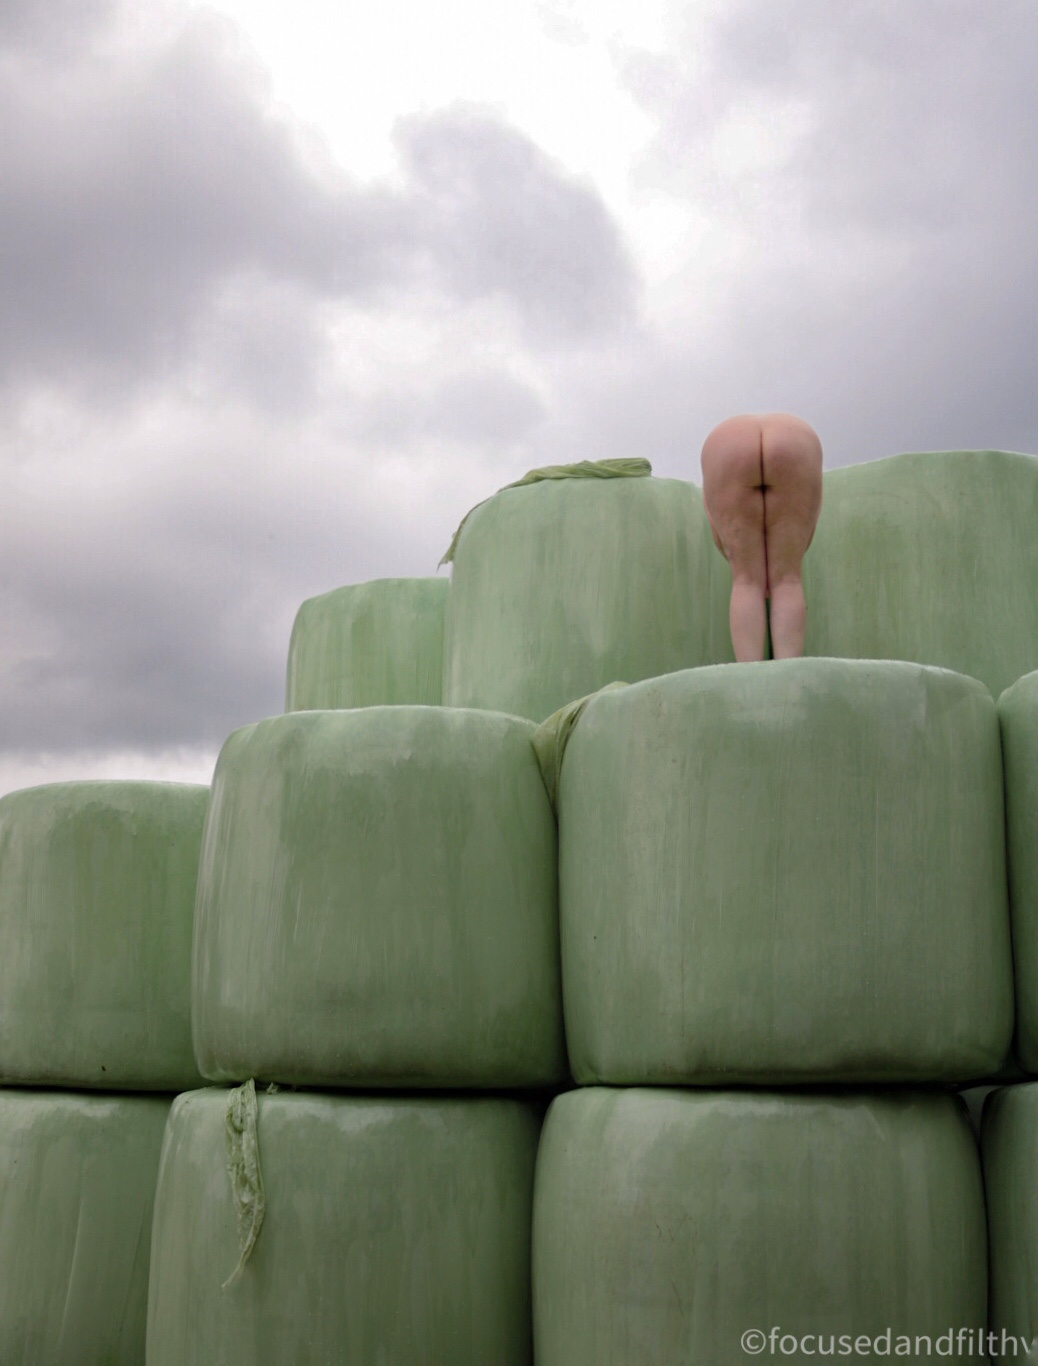 Butts and Bales